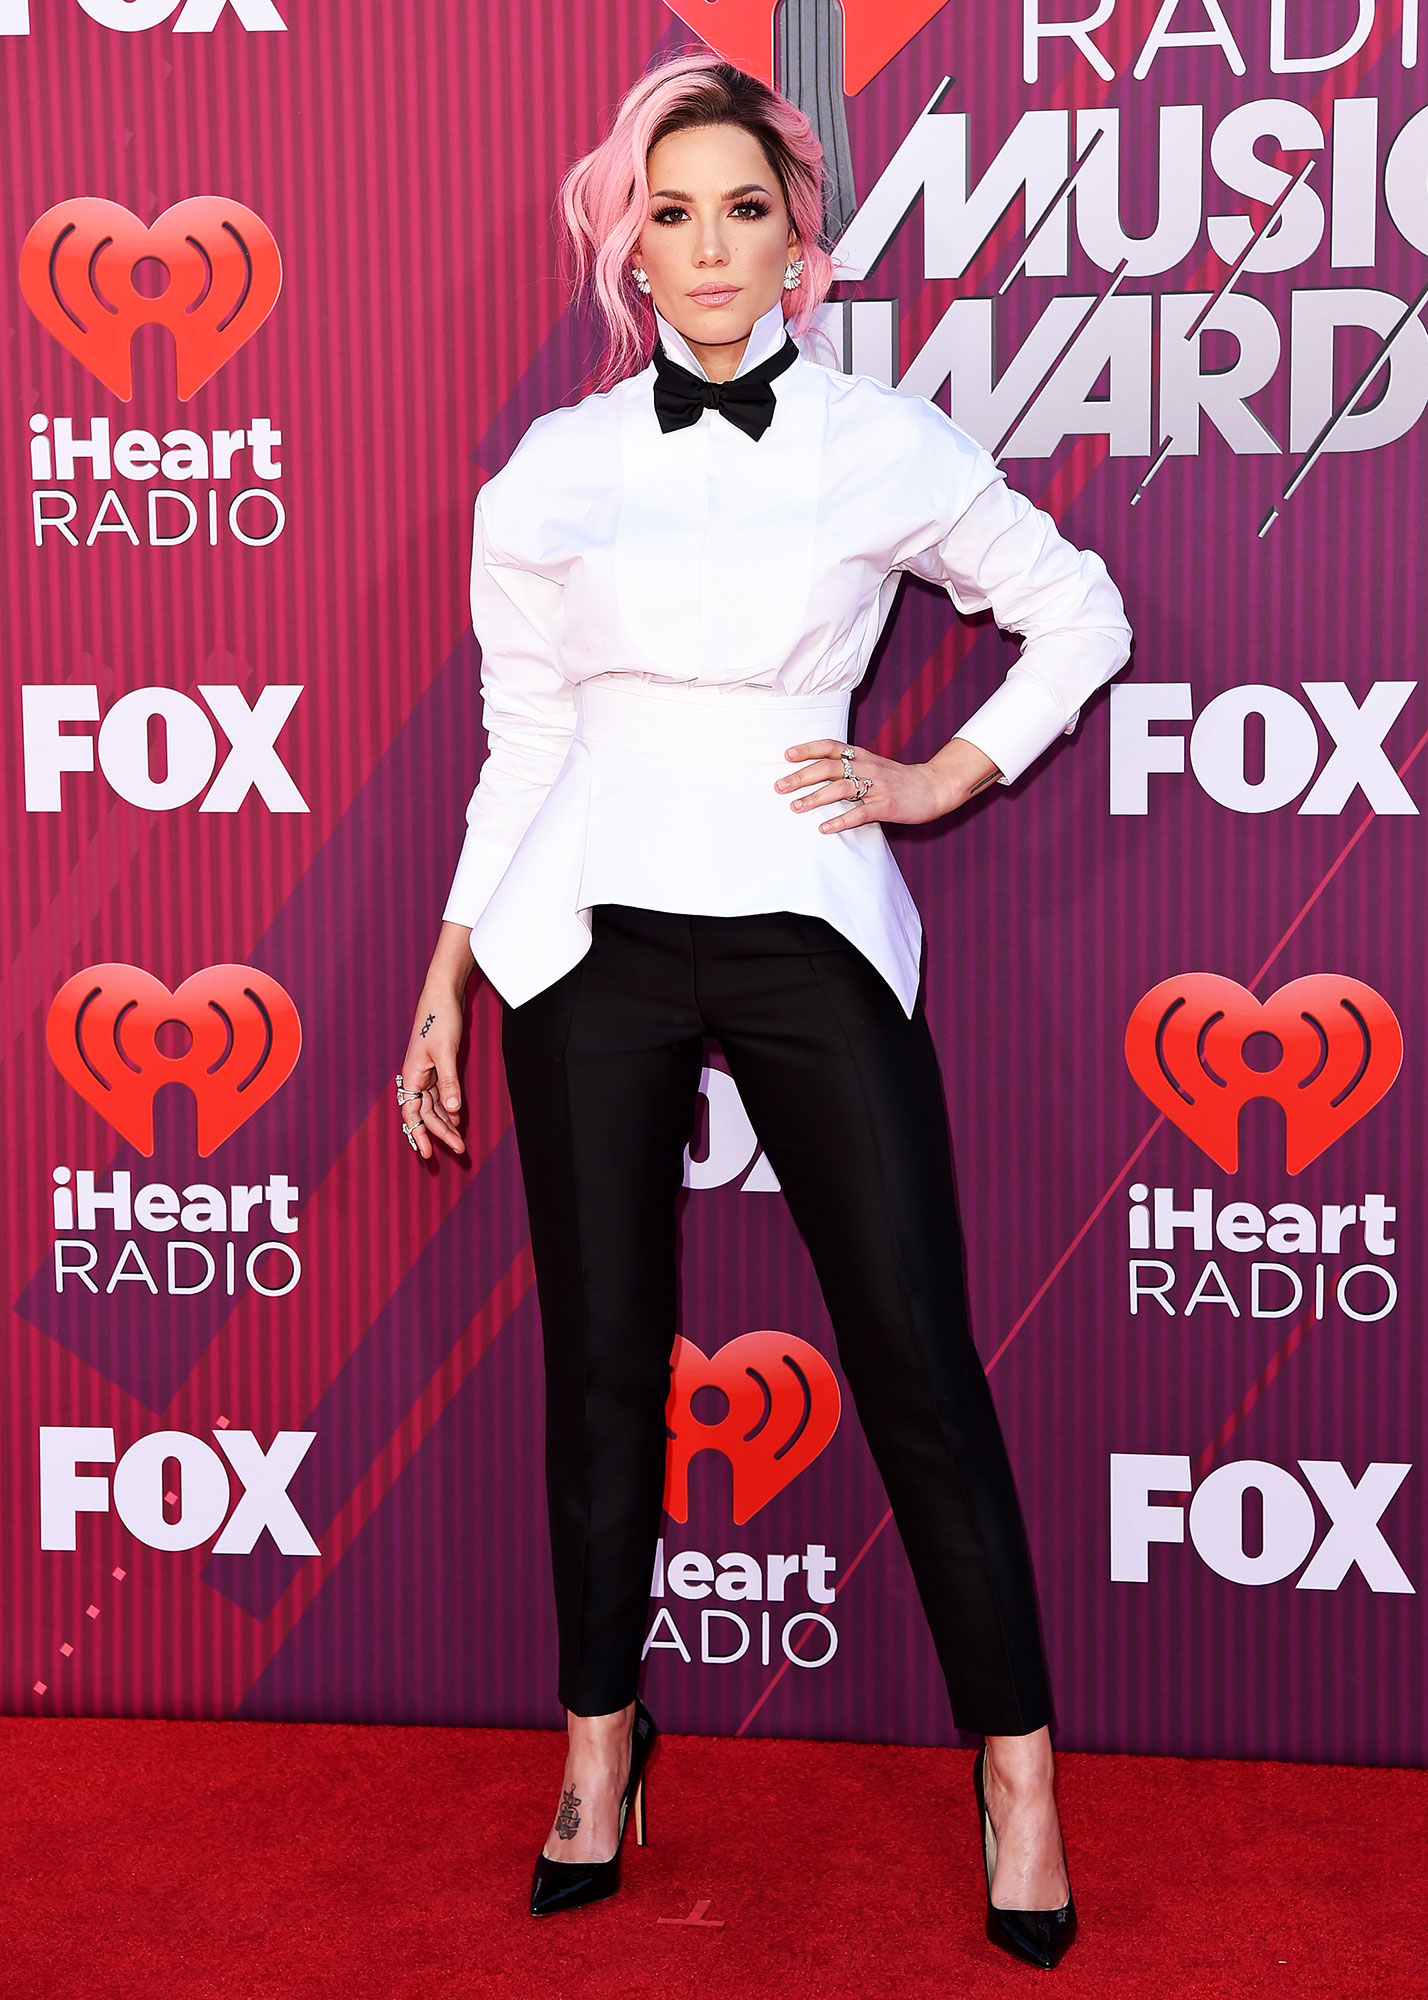 Halsey See What the Stars Wore to the iHeart Radio Music Awards 2019 - Wearing a DSQUARED2 suit, Anita Ko jewelry and Cult Of Coquette shoes.